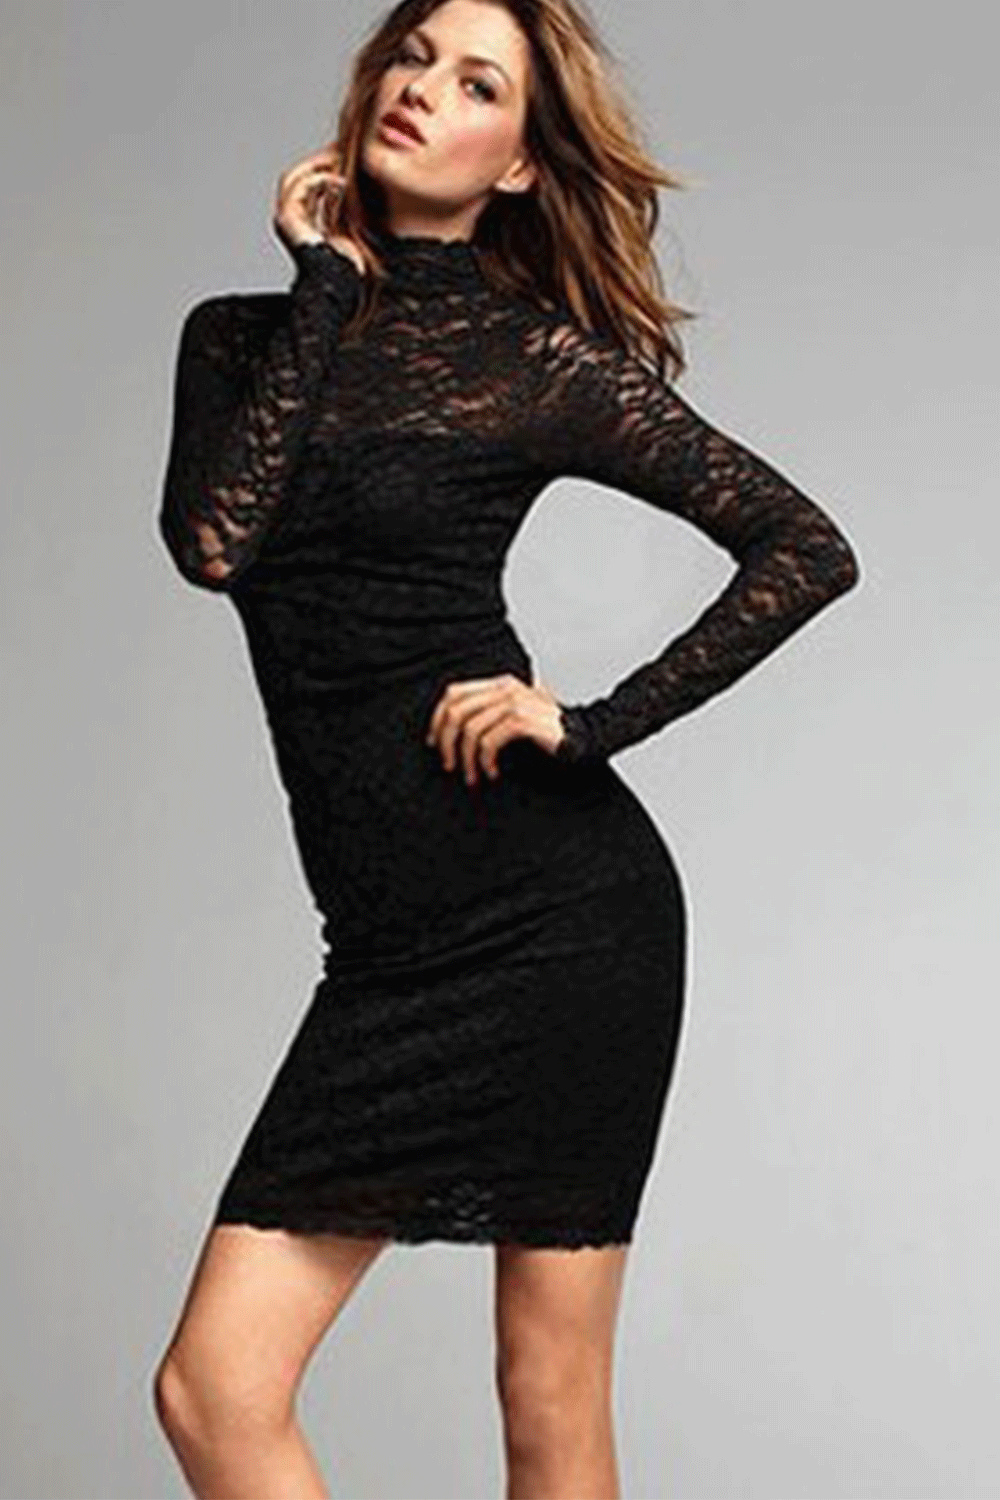 Lace Black dress long sleeve pictures forecasting dress in everyday in 2019